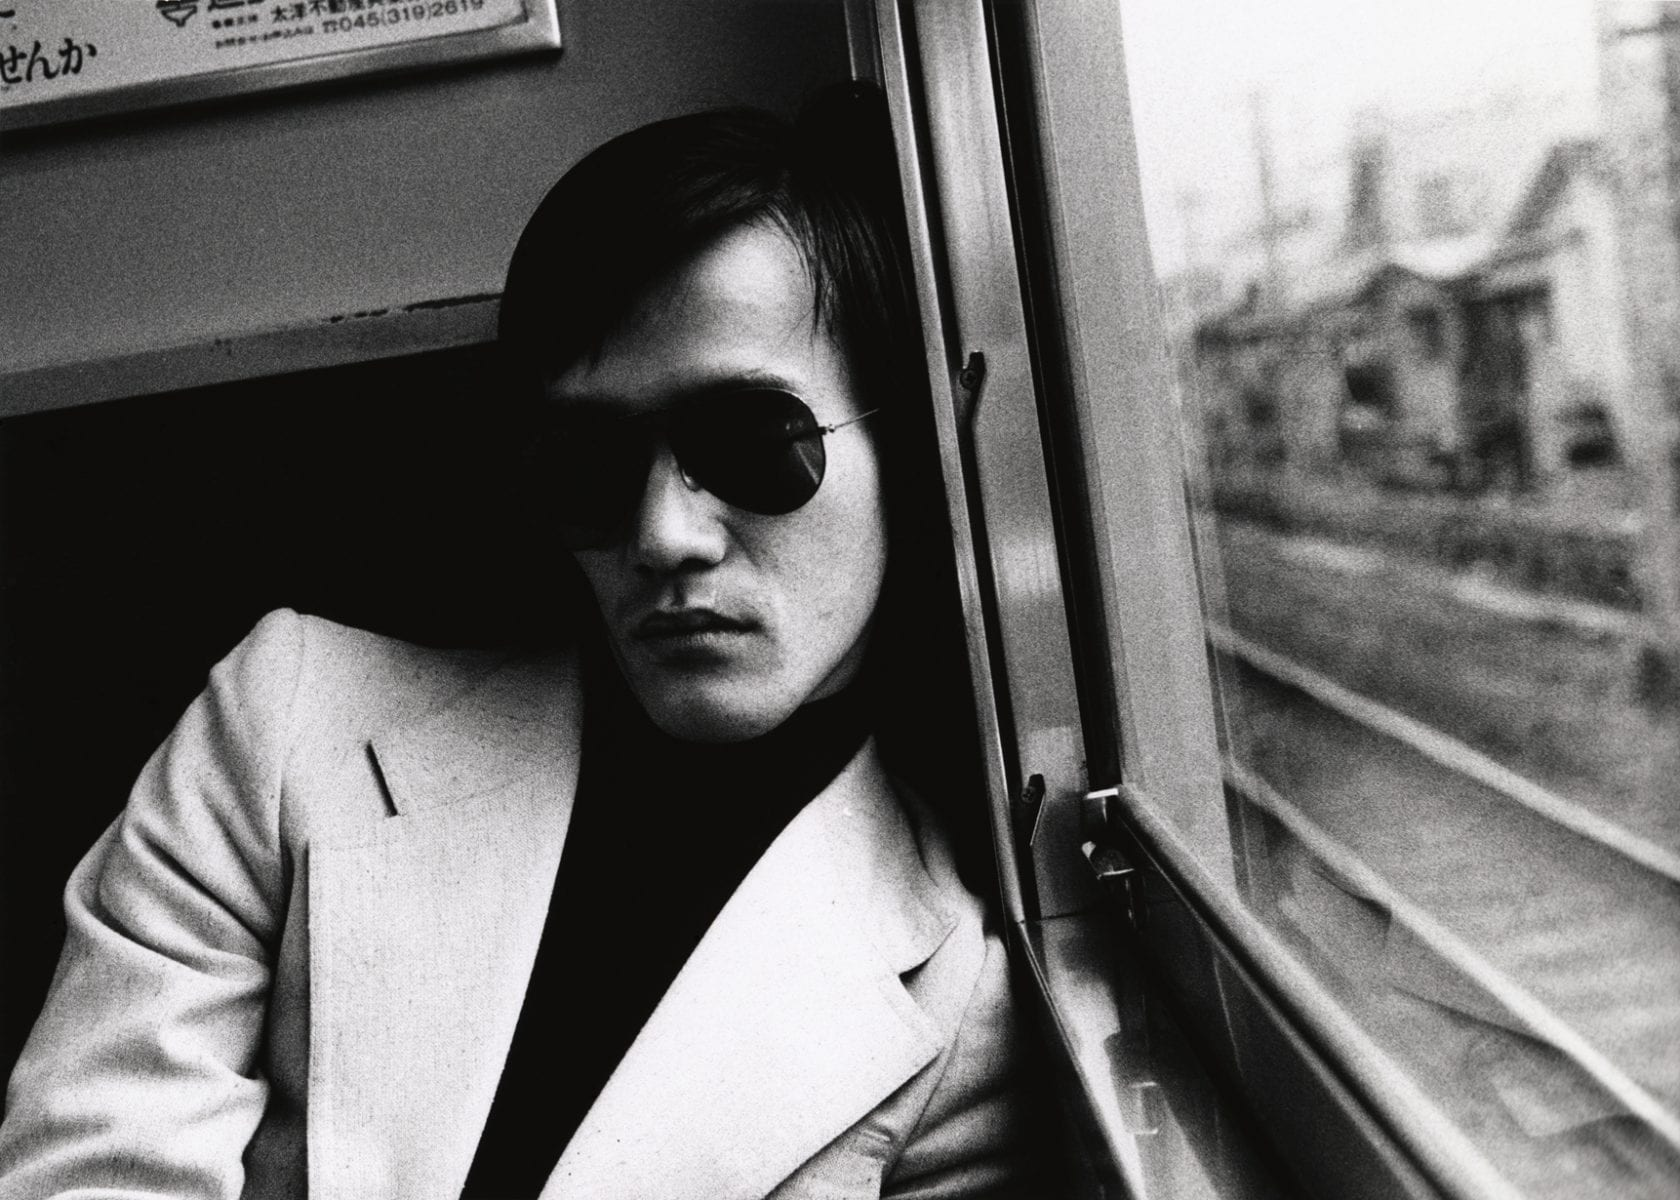 Man on train Black and White photography Daidō Moriyama